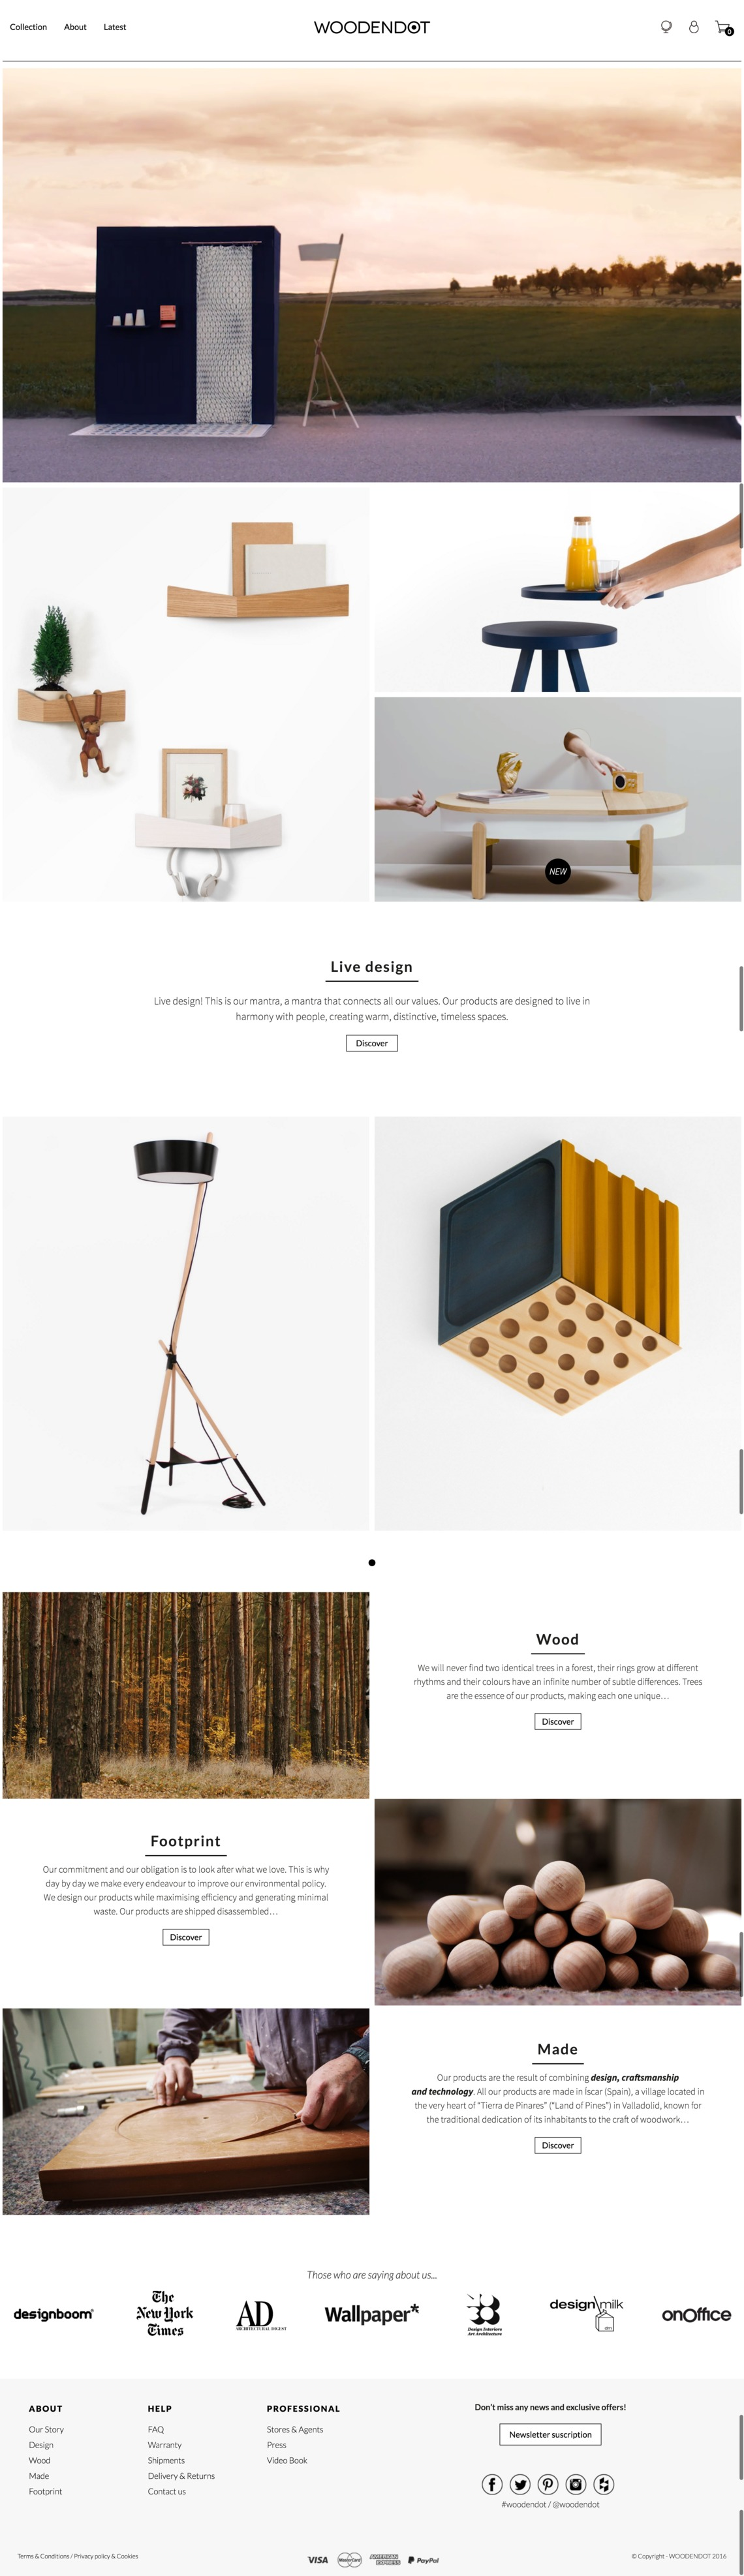 WOODENDOT: Furniture and accesories